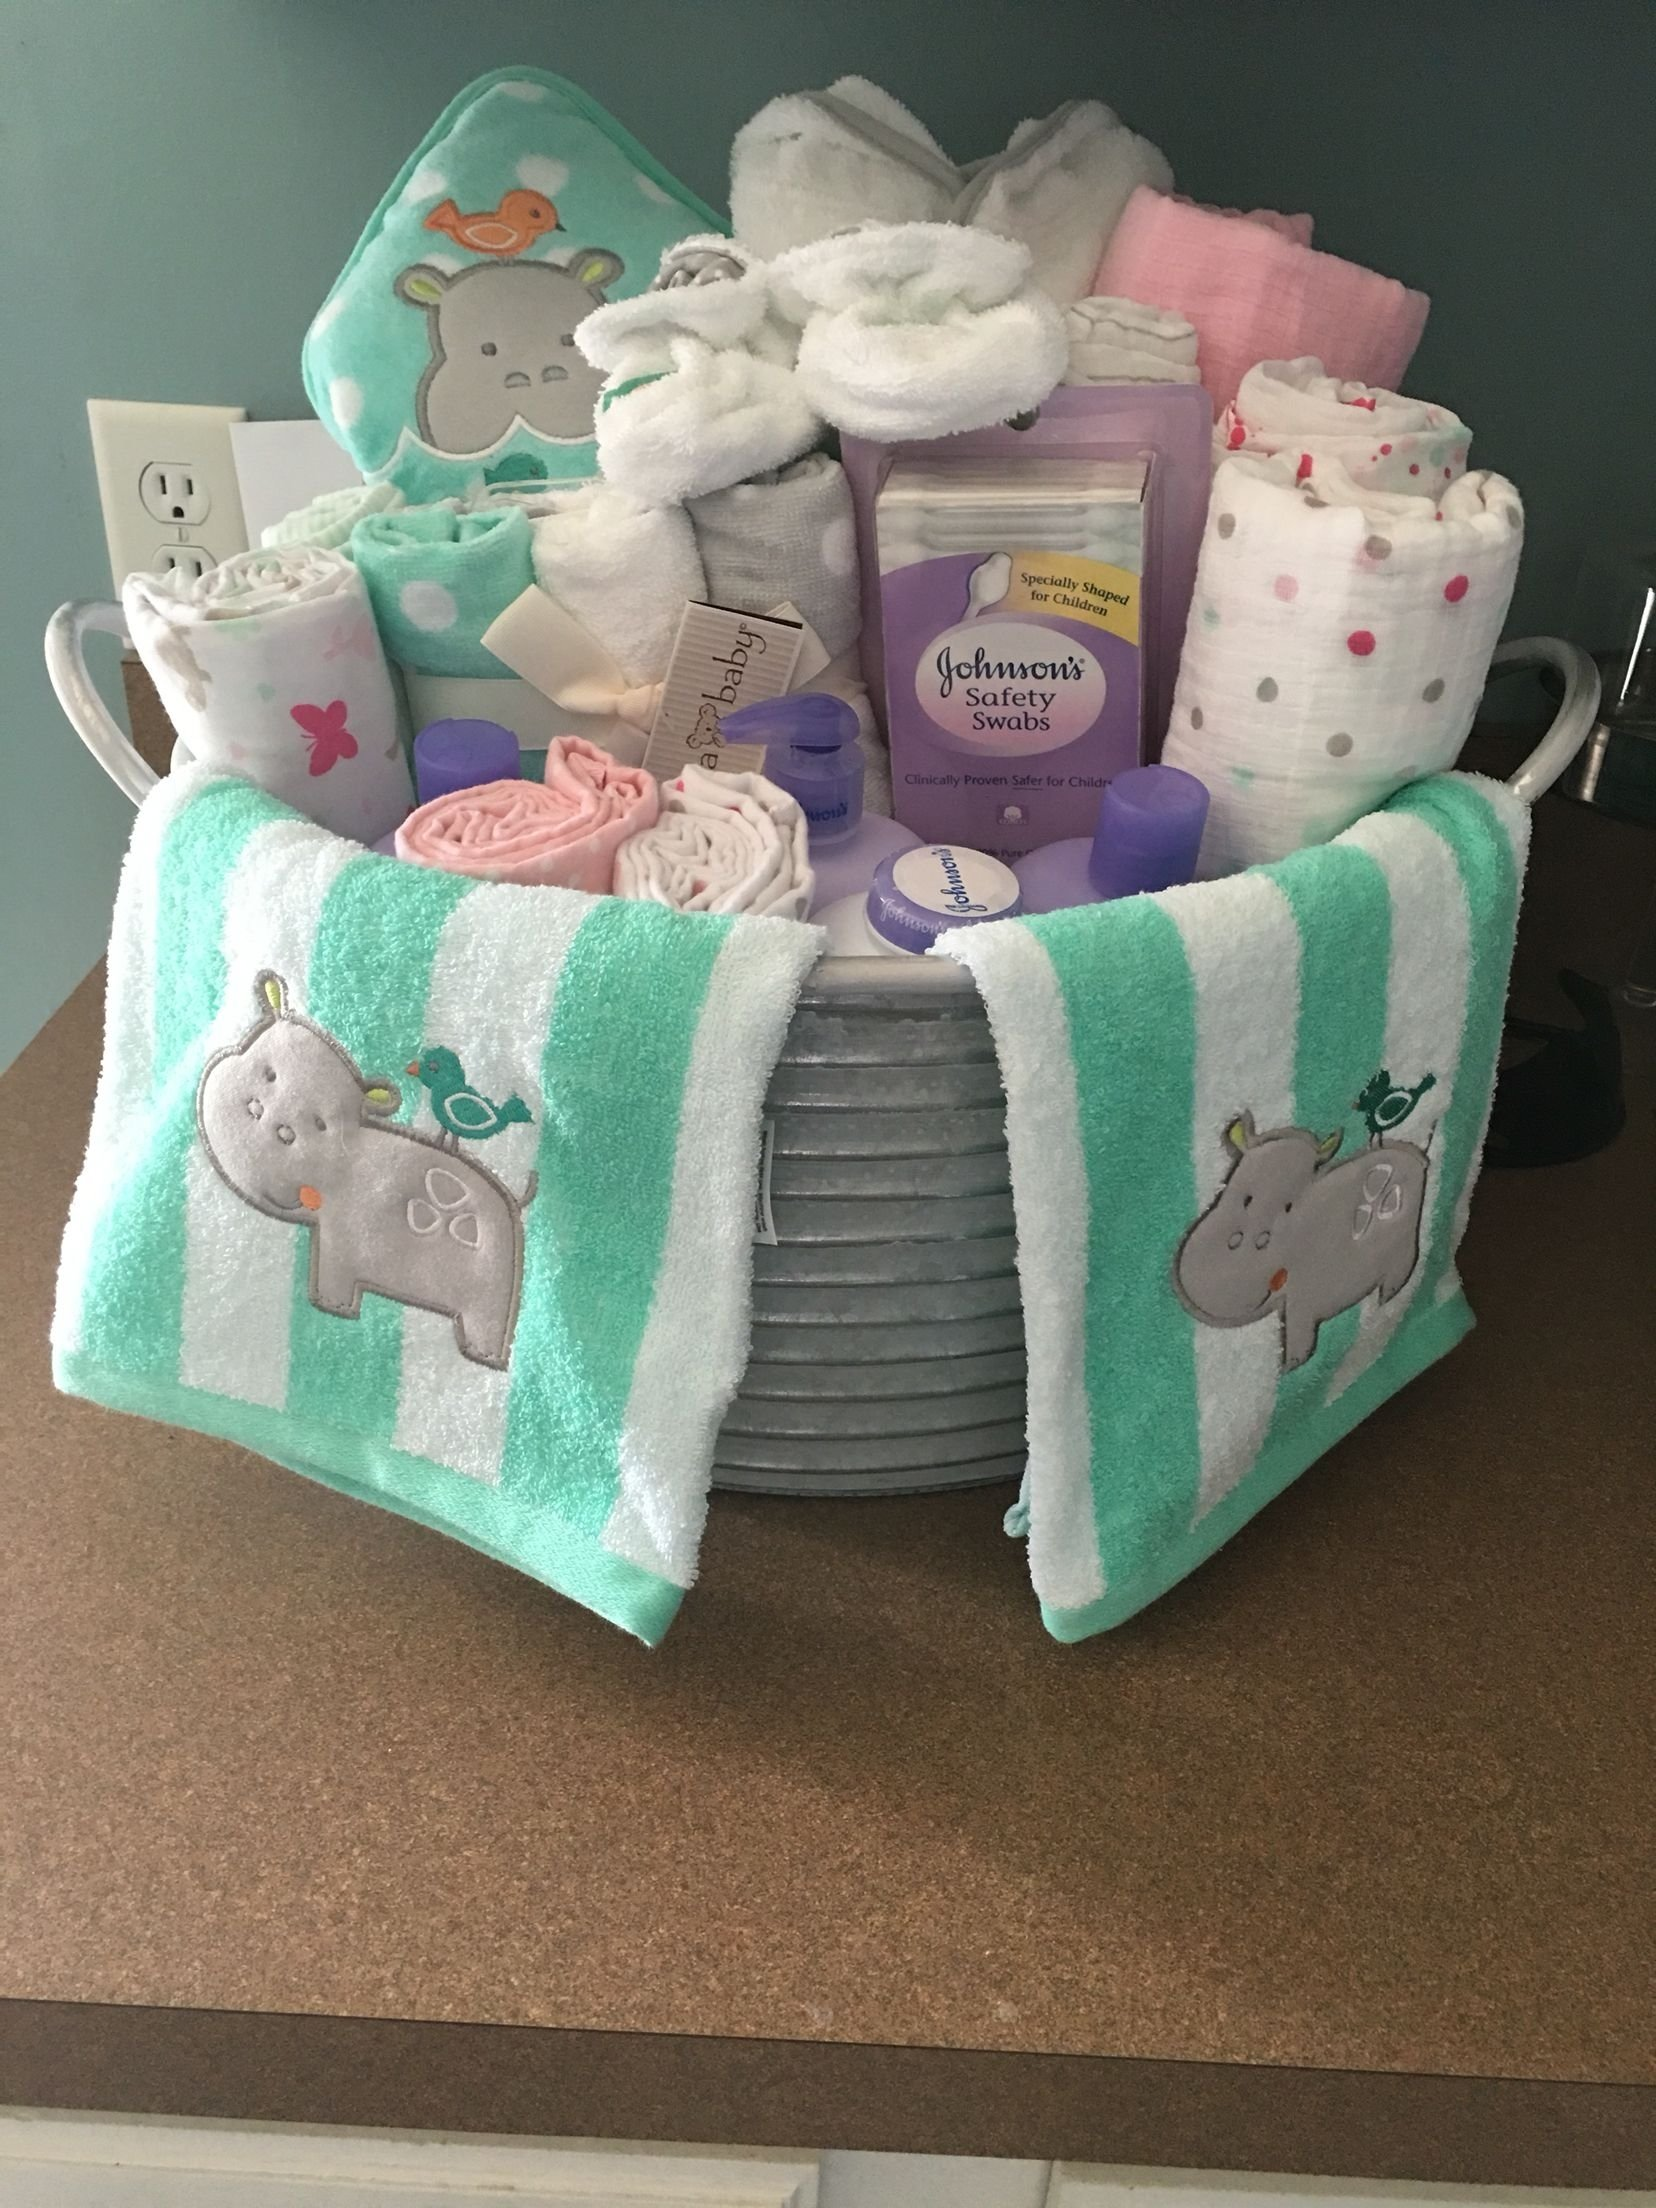 10 Wonderful Unique Baby Shower Gift Ideas baby shower present i made galvanized bucket with baby bath items 2021